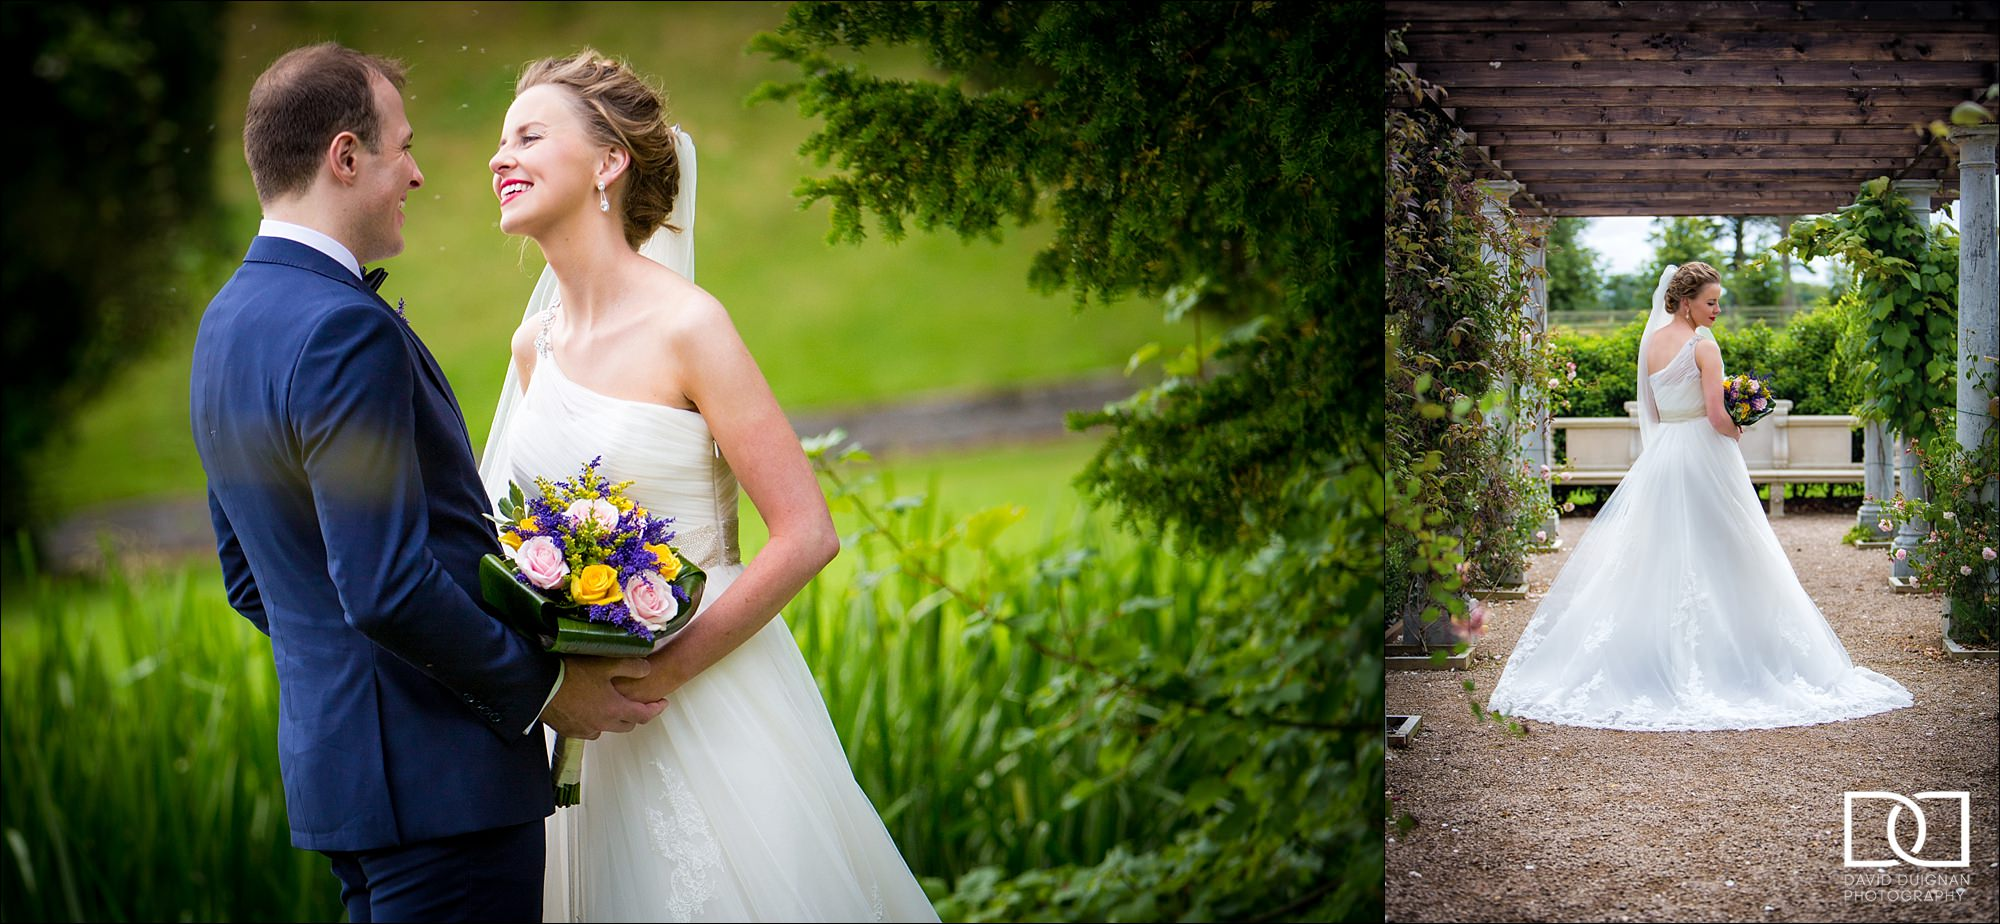 louth wedding photographer david duignan photography castle bellingham wedding Ireland 0040